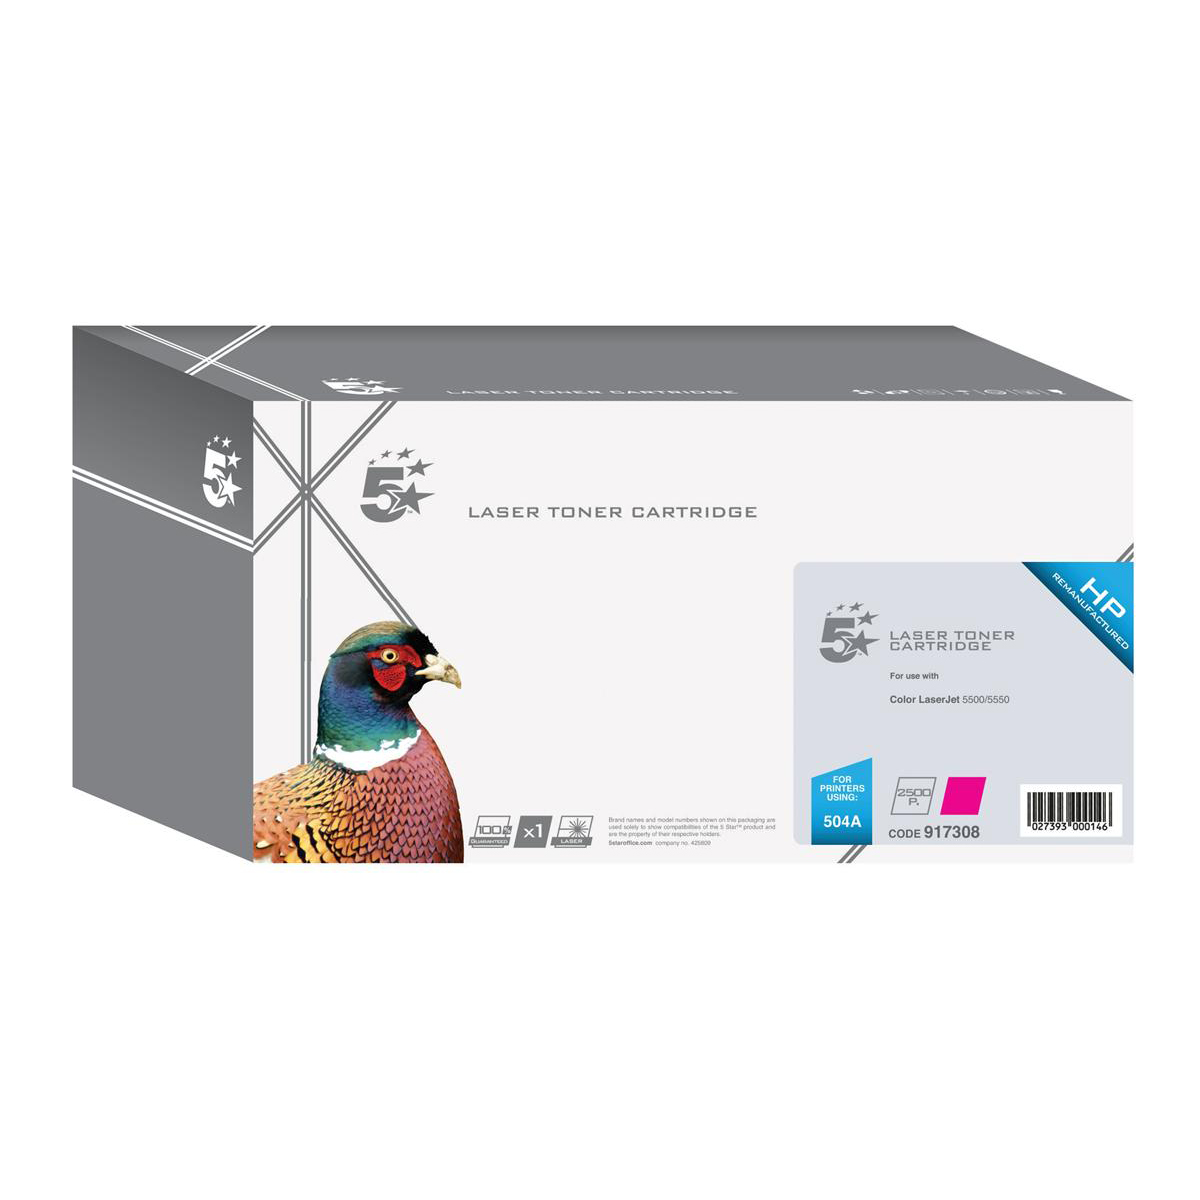 5 Star Office Remanufactured Laser Toner Cartridge 7000pp Magenta [HP 504A CE253A Alternative]